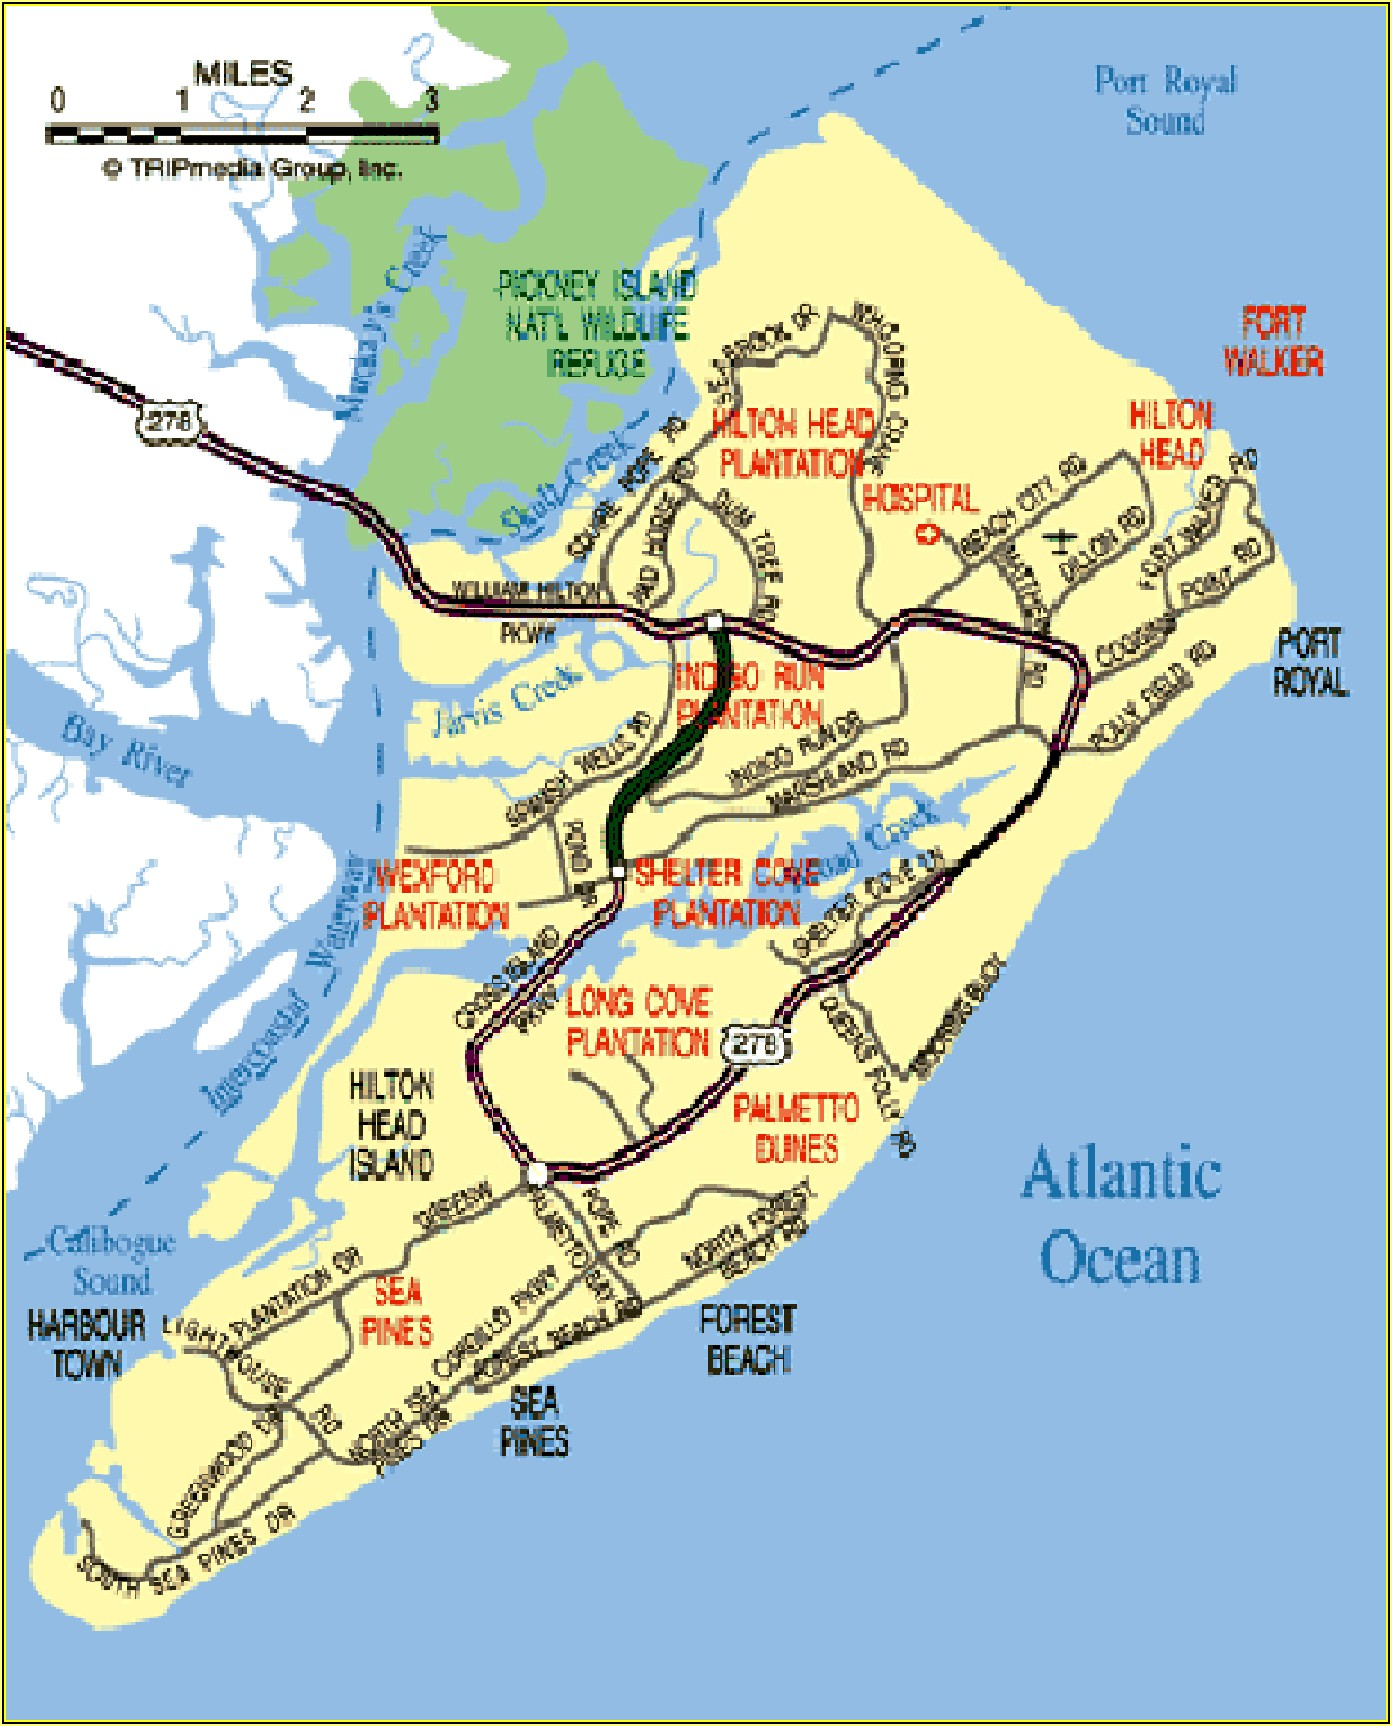 Hilton Head Island Map Of Plantations